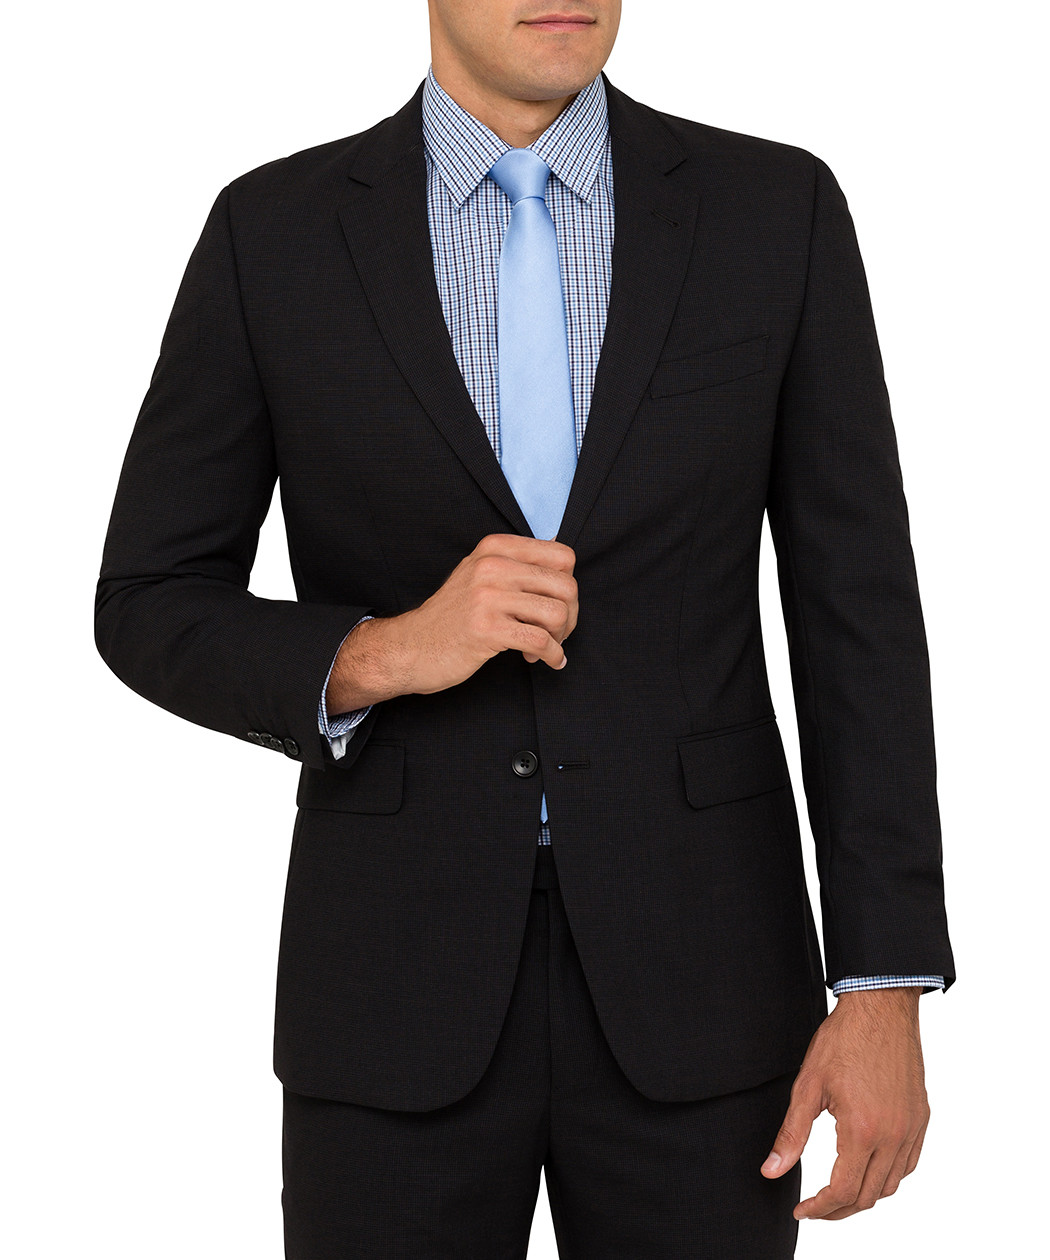 Van Heusen Slim Fit Textured Black Suit Jacket | Mens Jackets | Van Heusen Australia